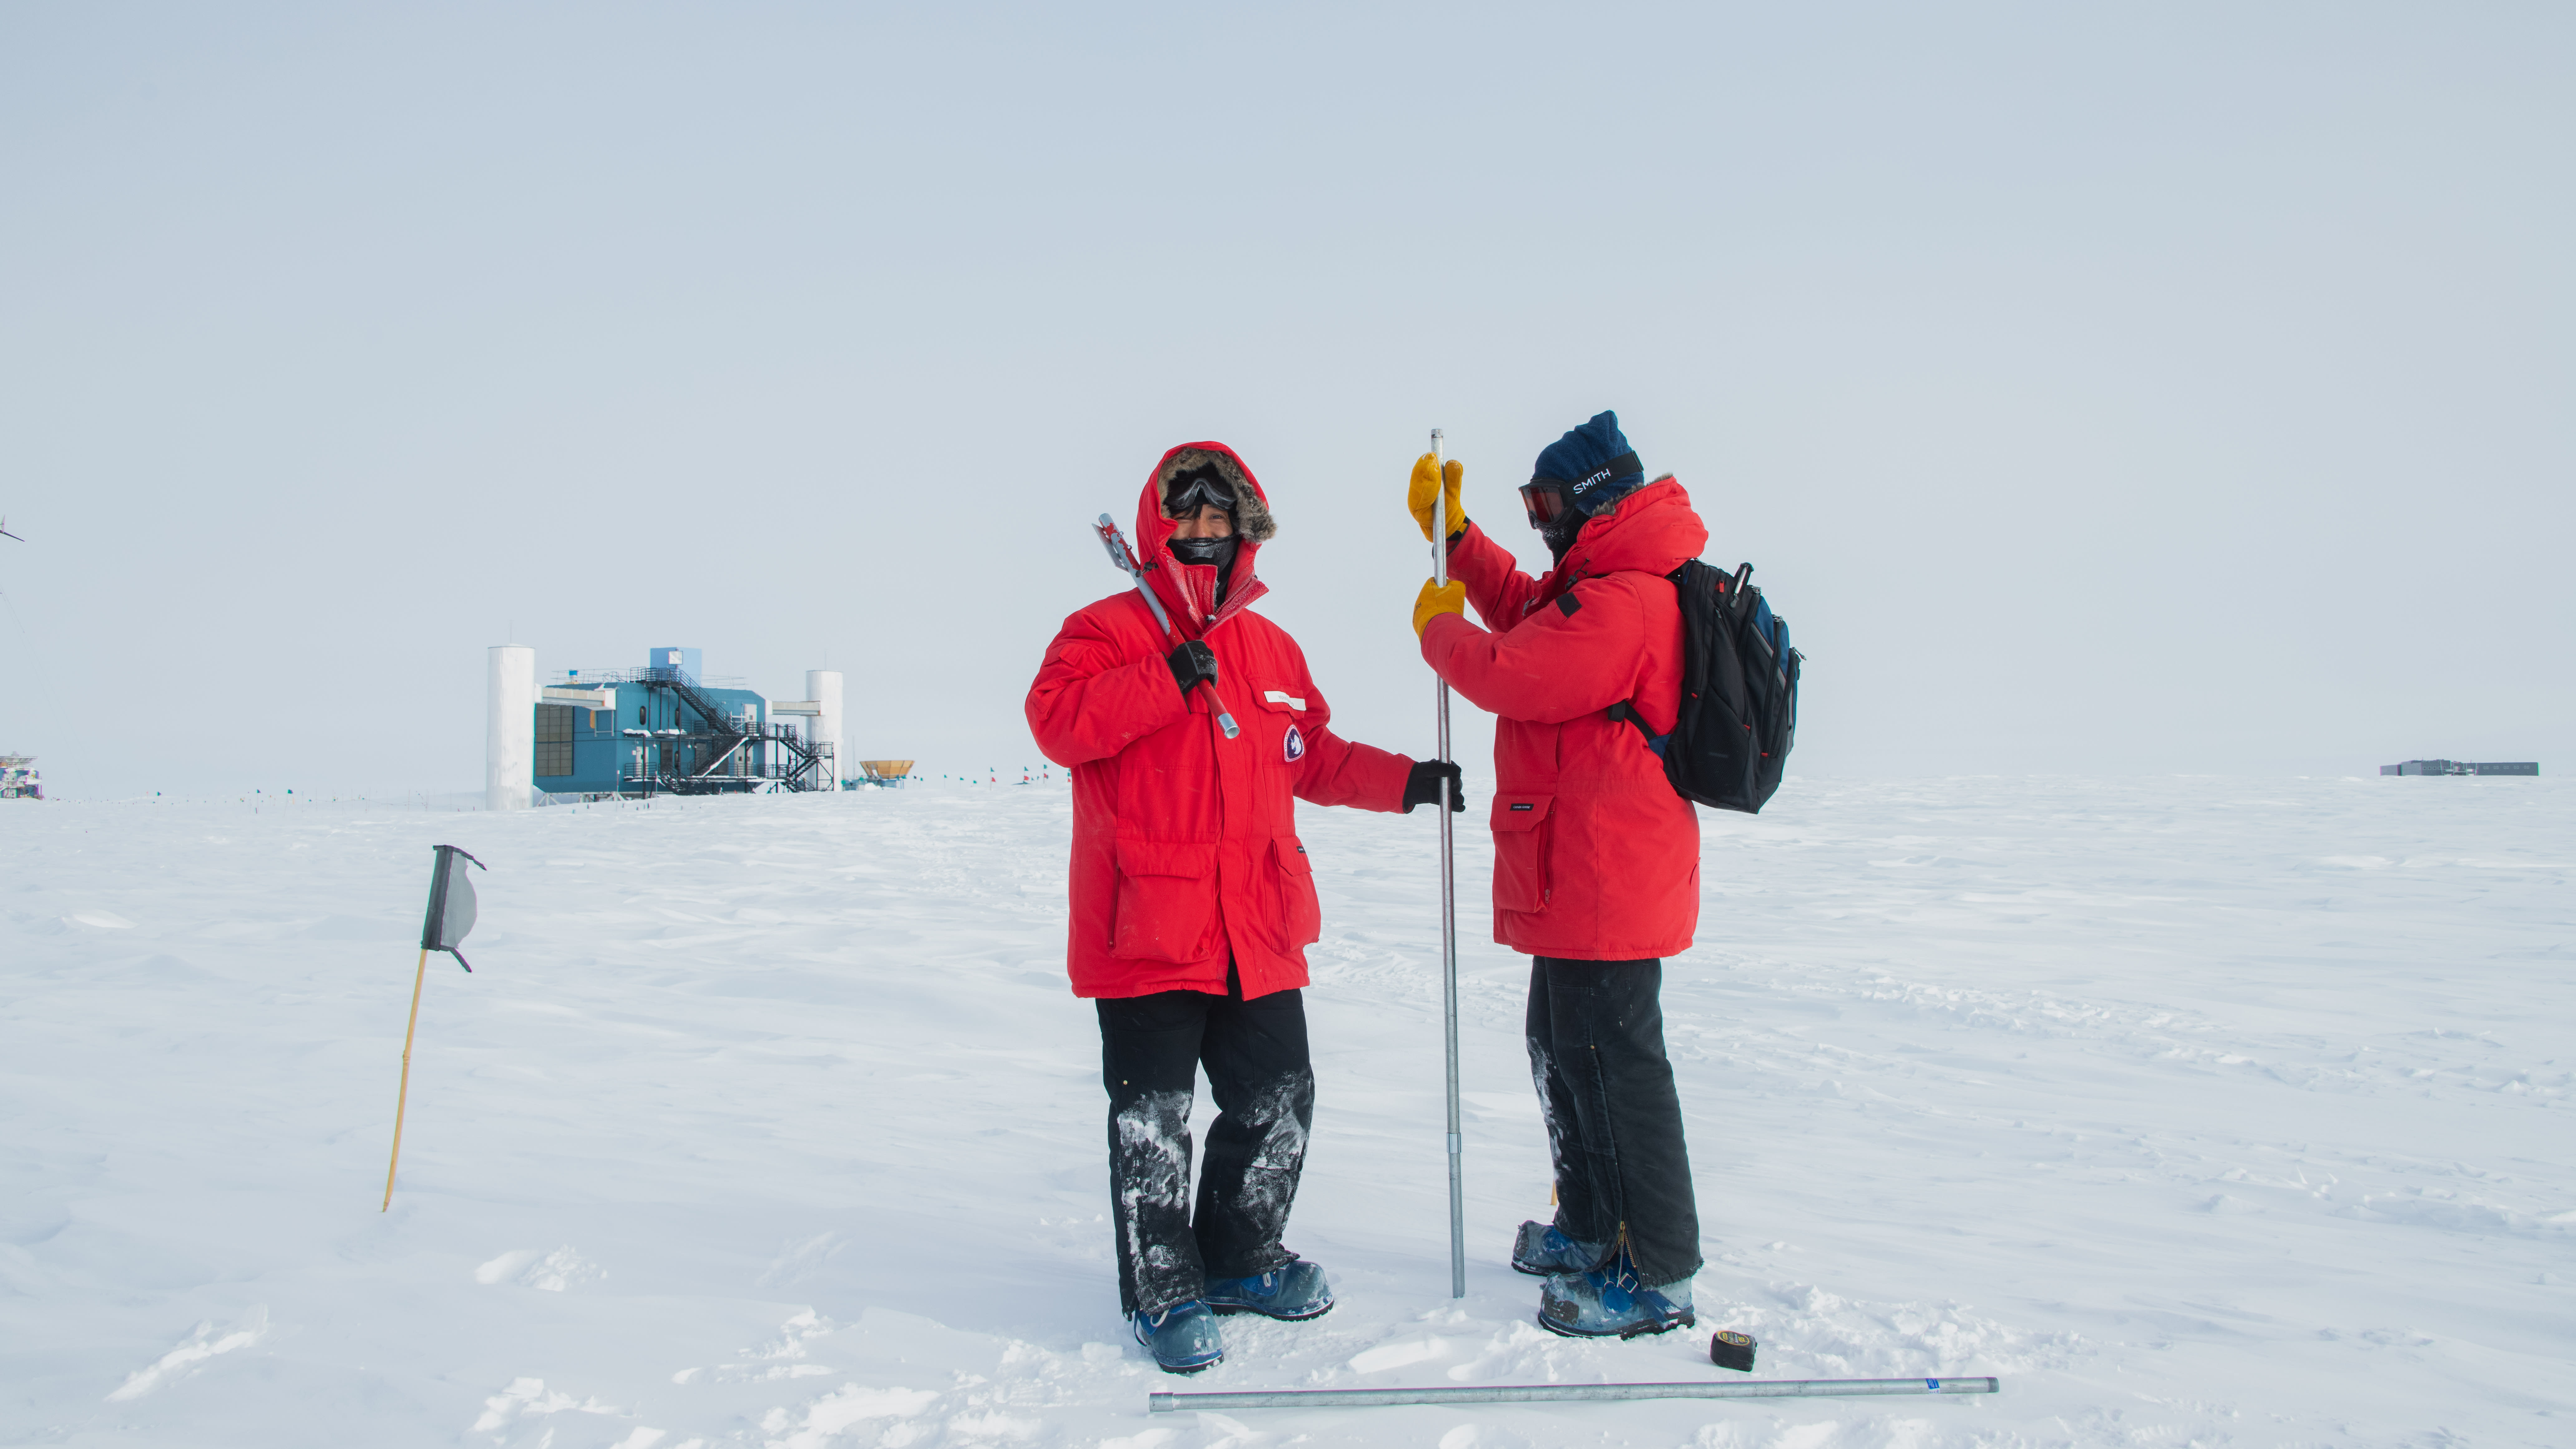 A couple of IceCube scientists at the South Pole taking snow measurements. The IceCube Laboratory is in the background on the left.